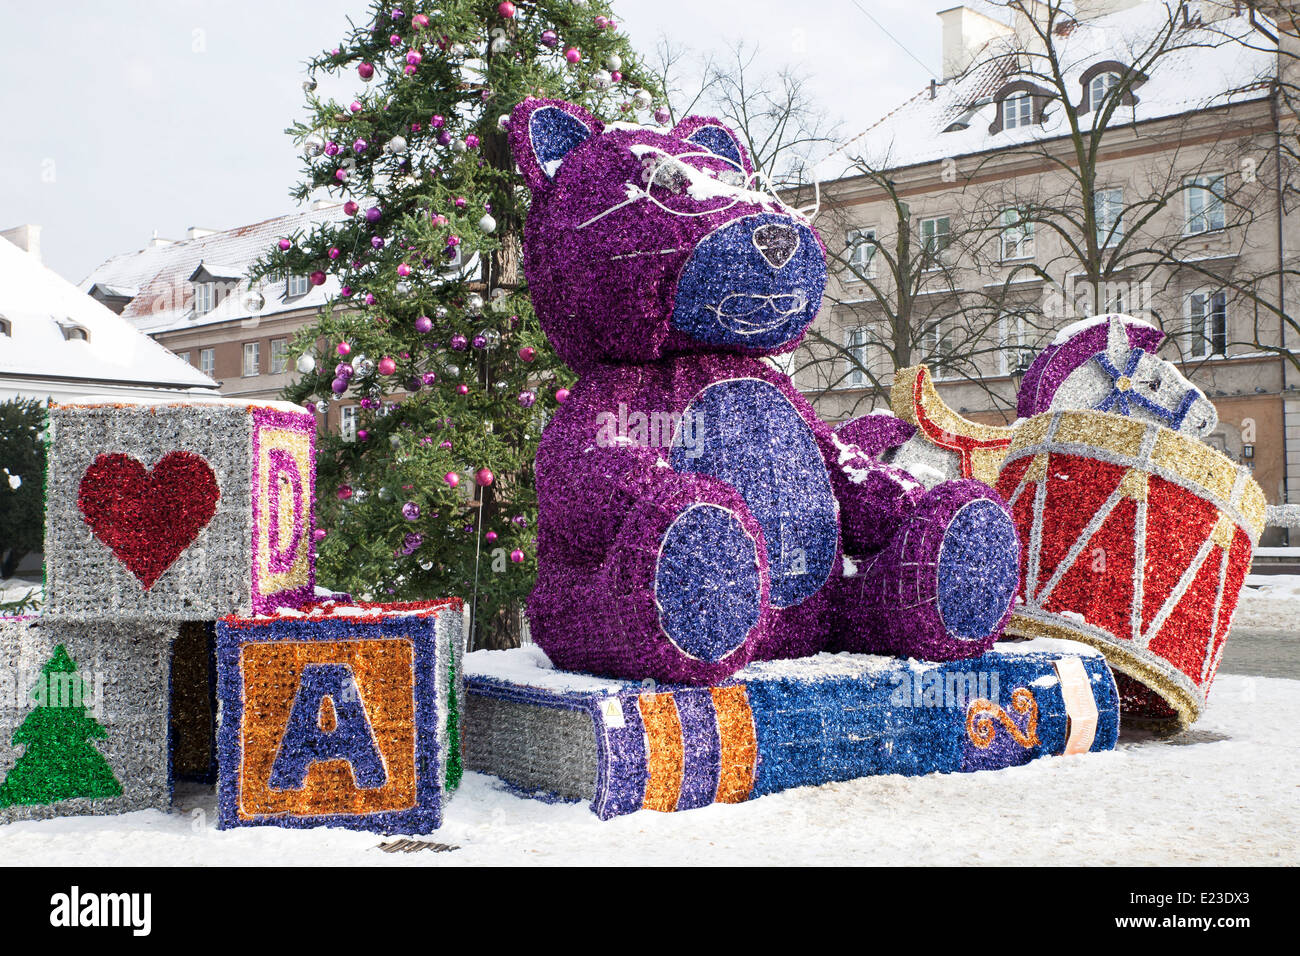 Large Scale Exterior Christmas Decorations In Warsaw, Poland